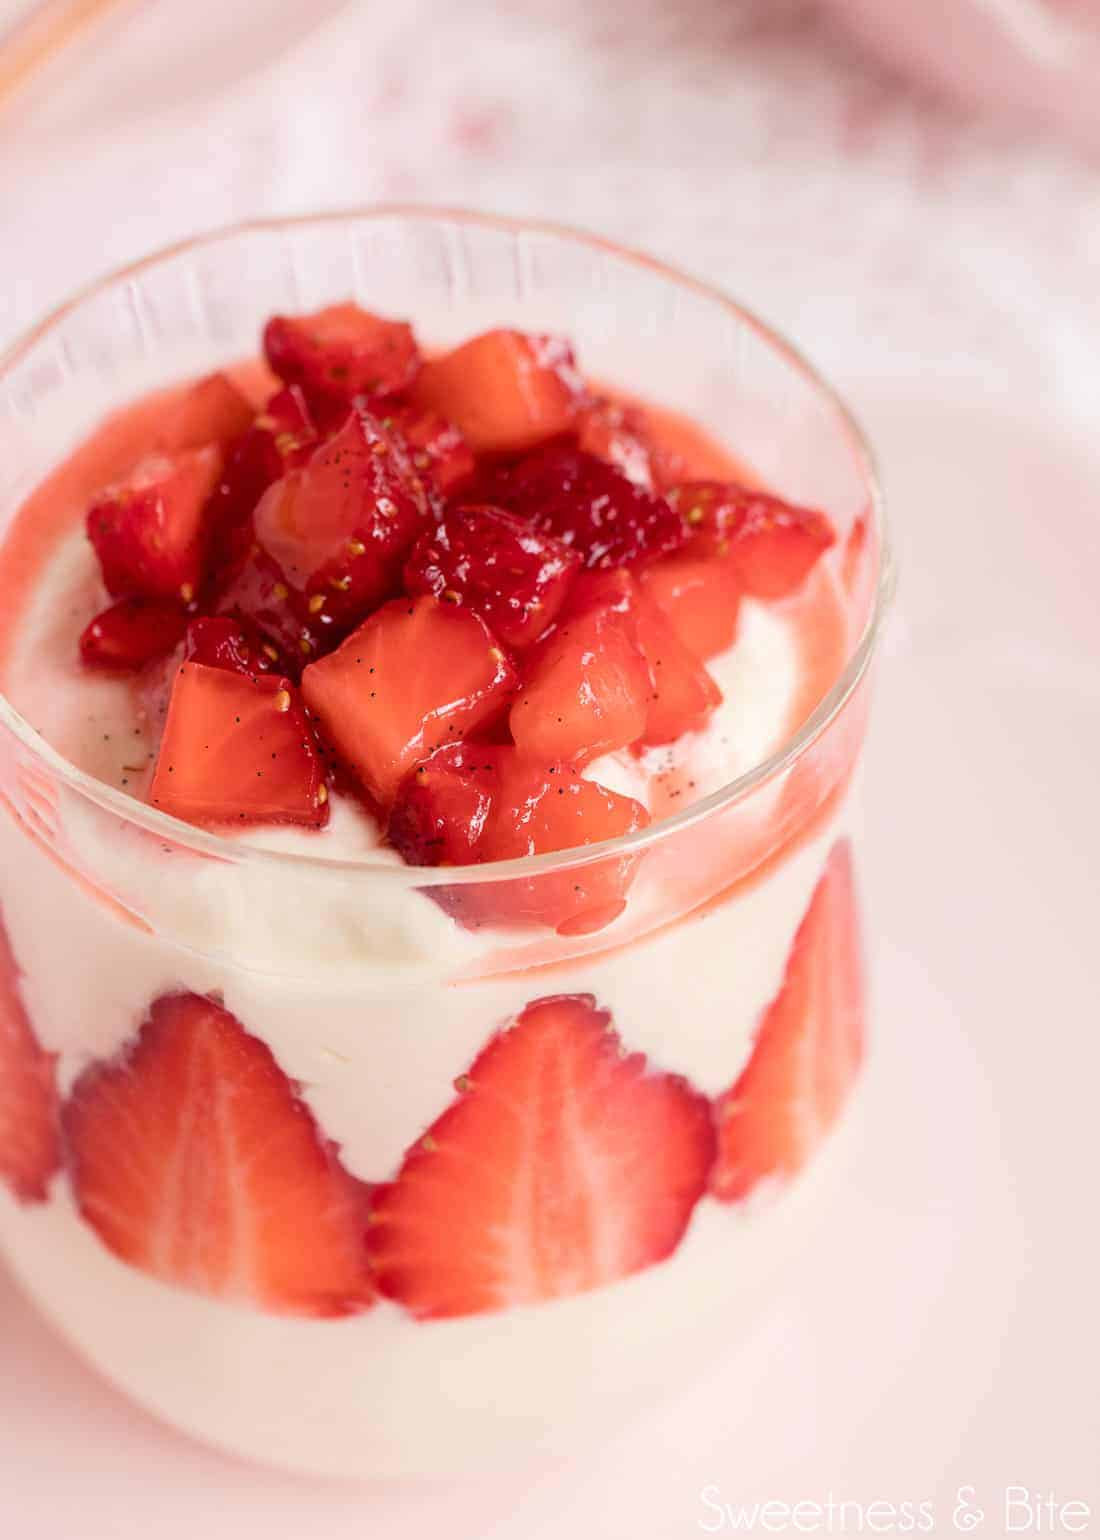 White Chocolate and Strawberry Mousse ~ by Sweetness & Bite